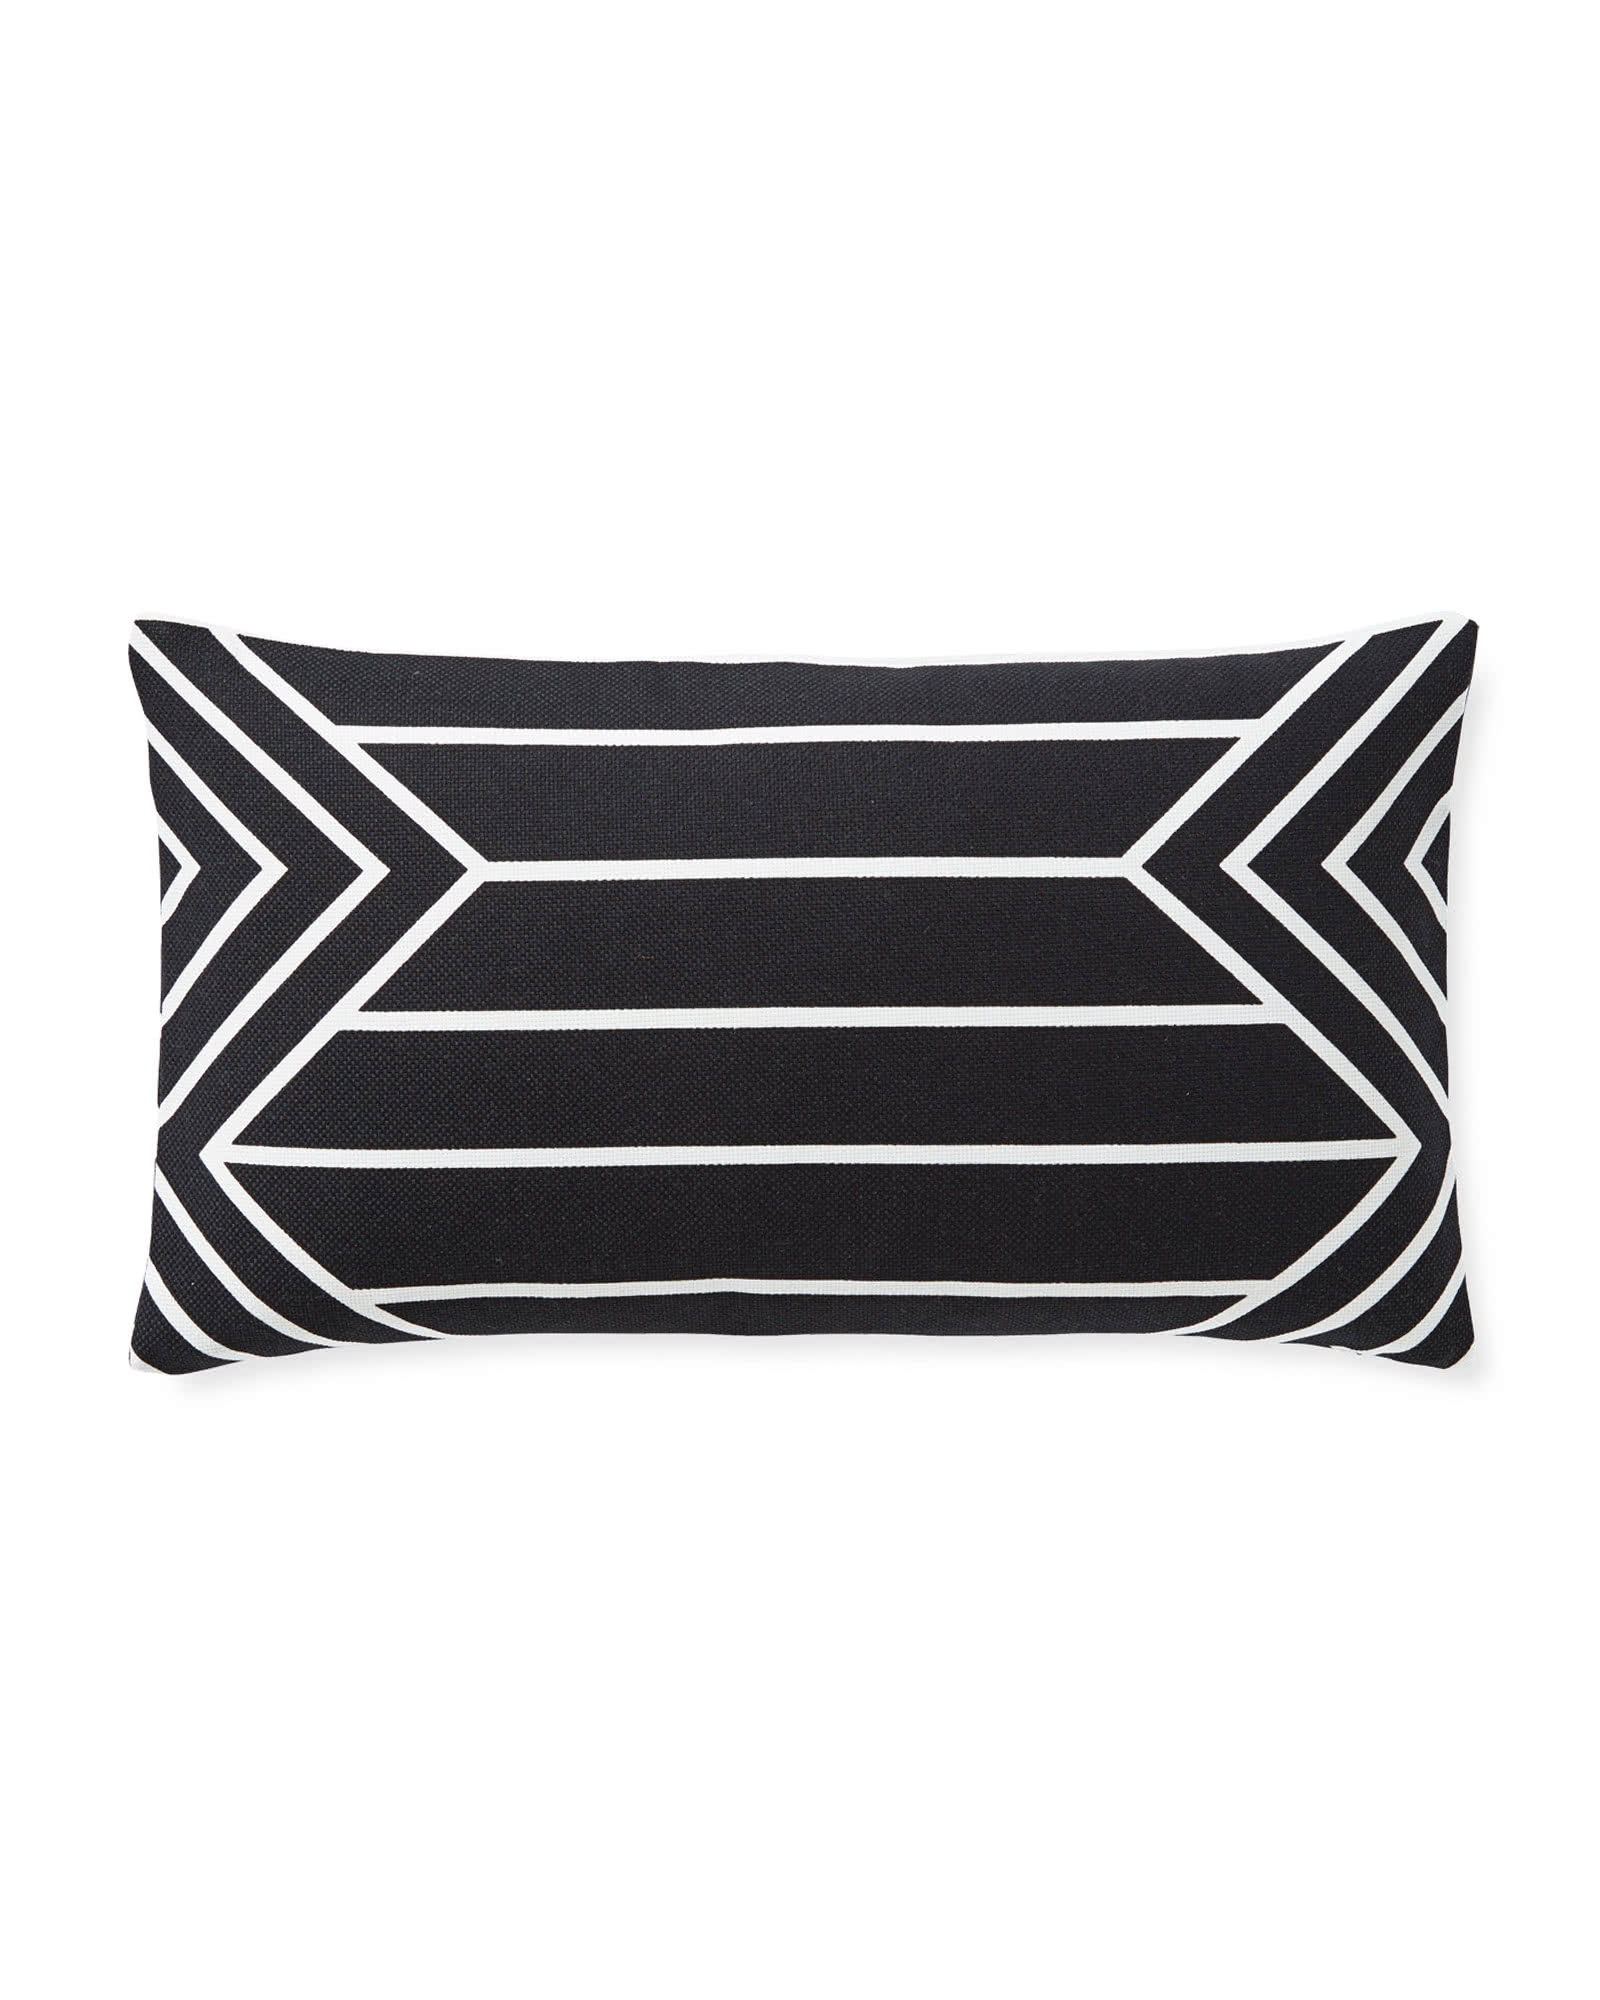 Portsmouth Outdoor Pillow Cover